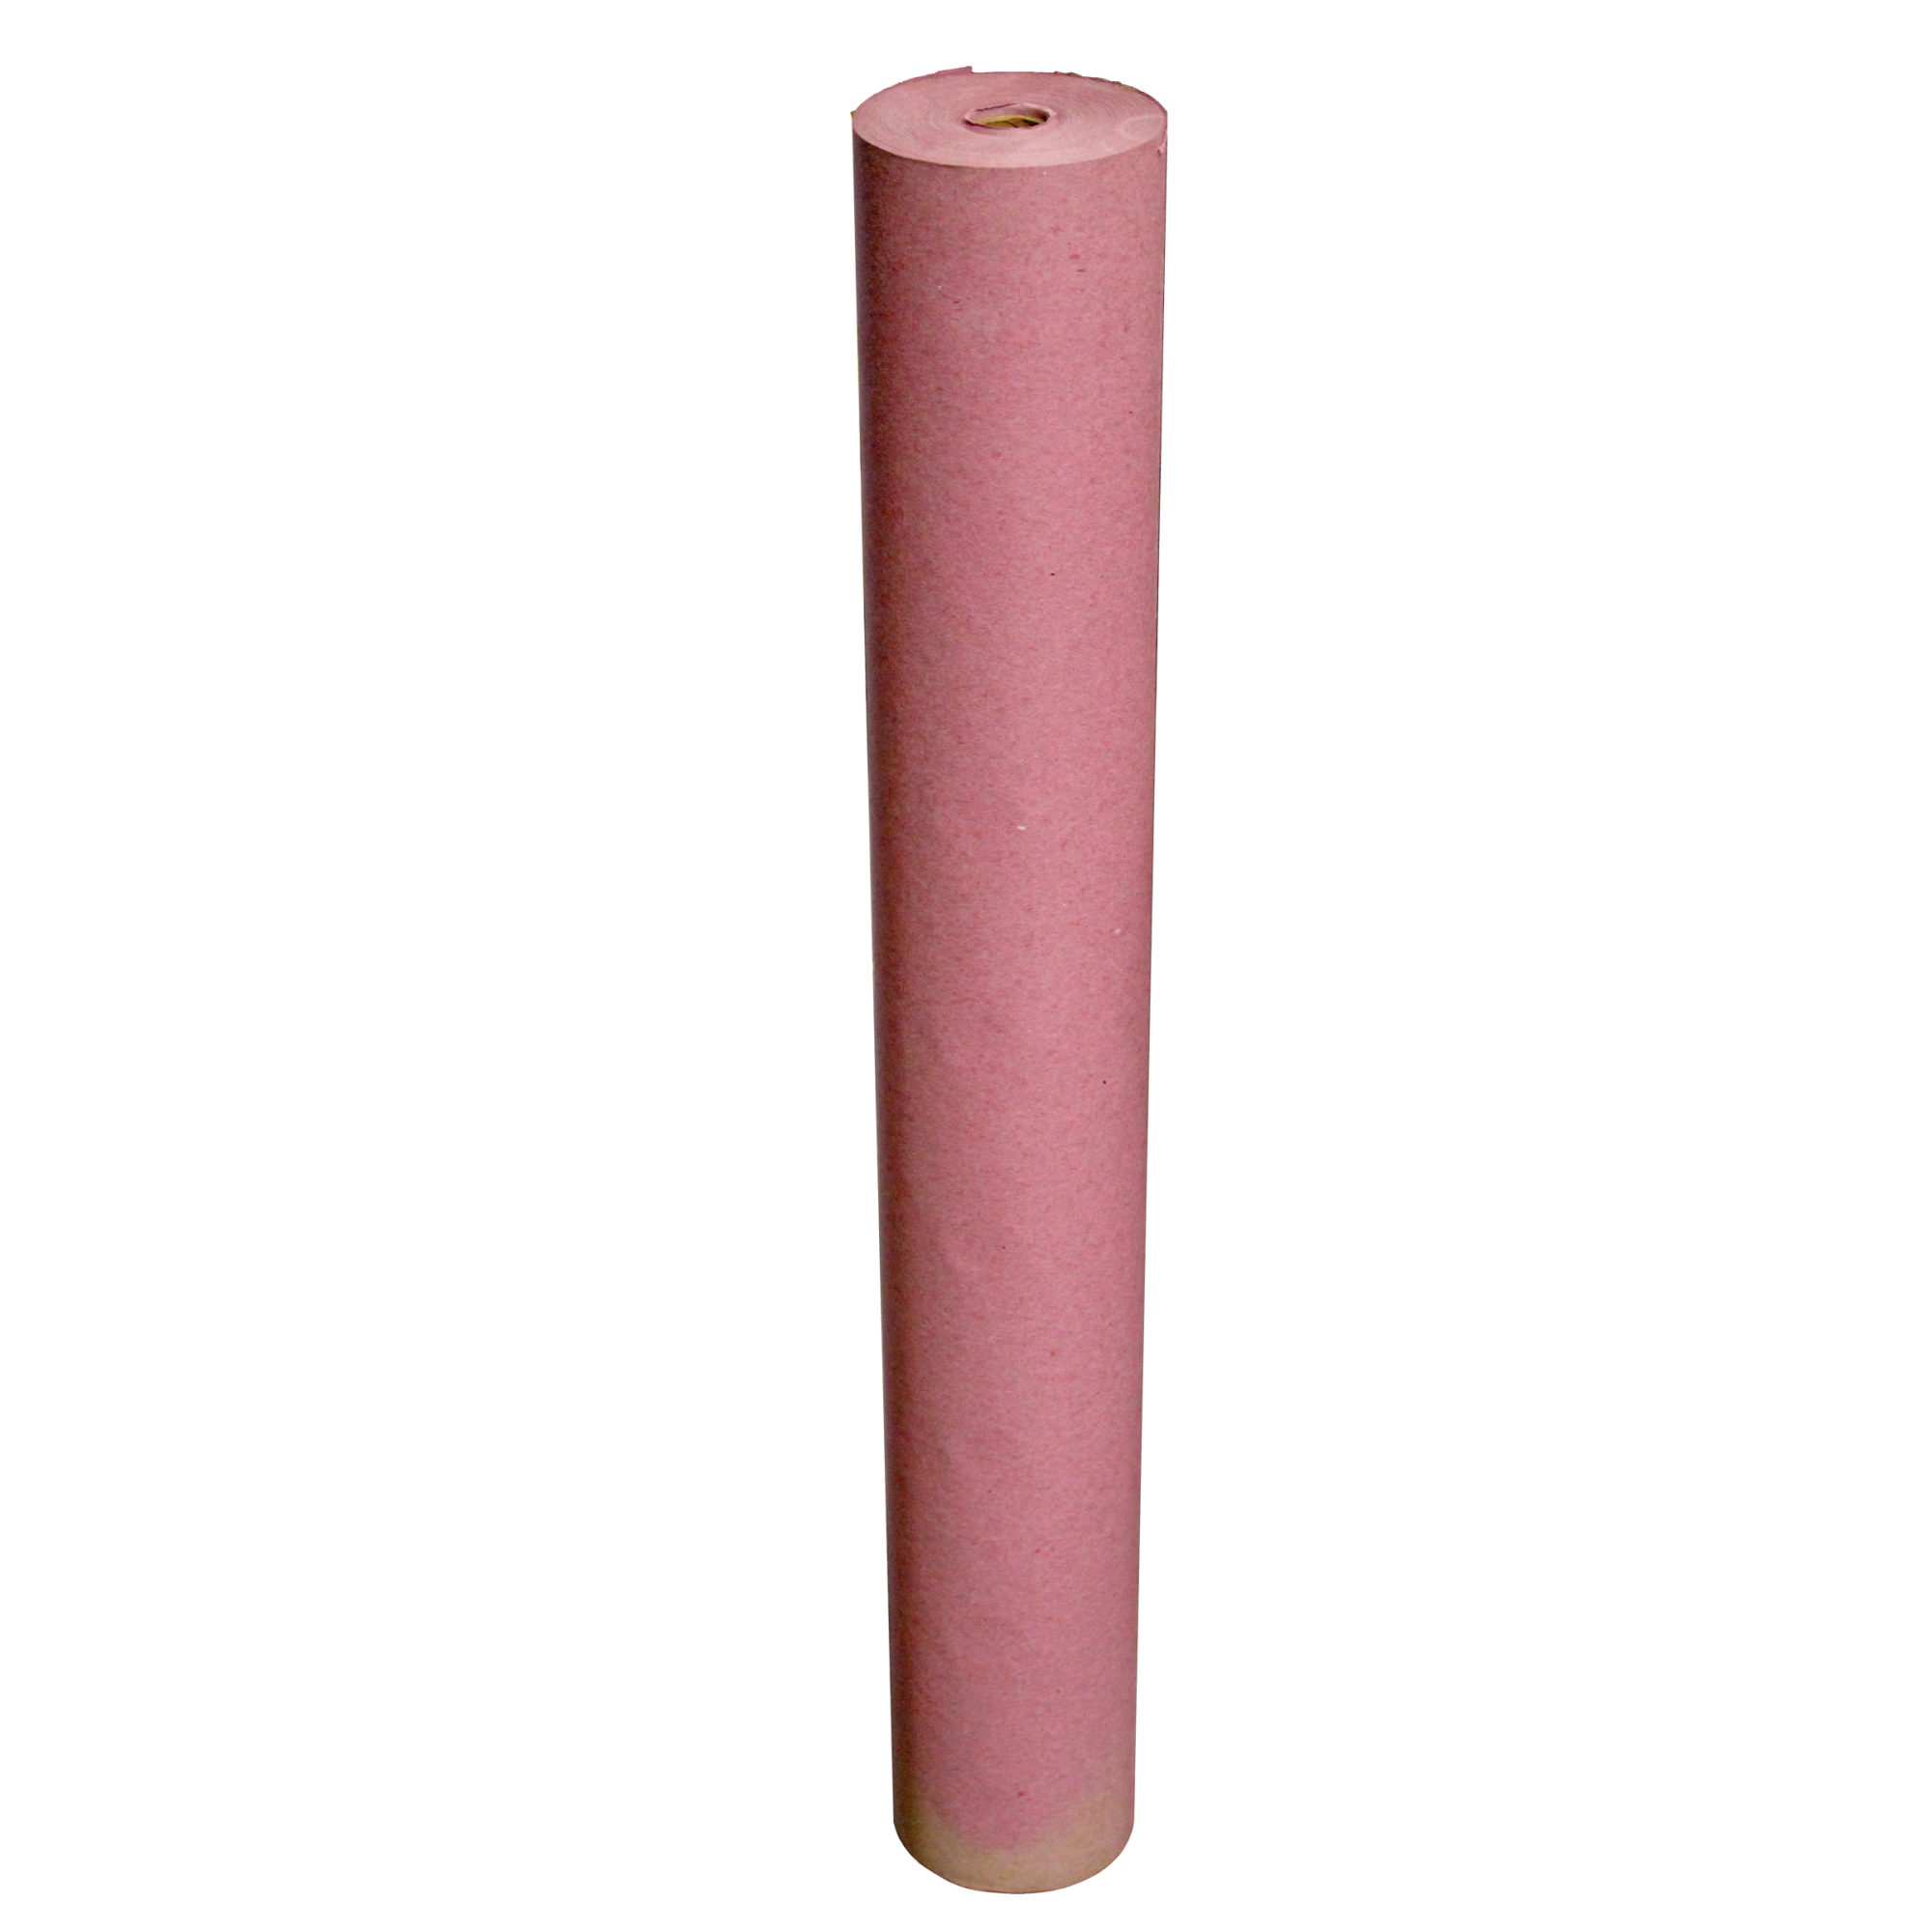 RED ROSIN PAPER ROLL